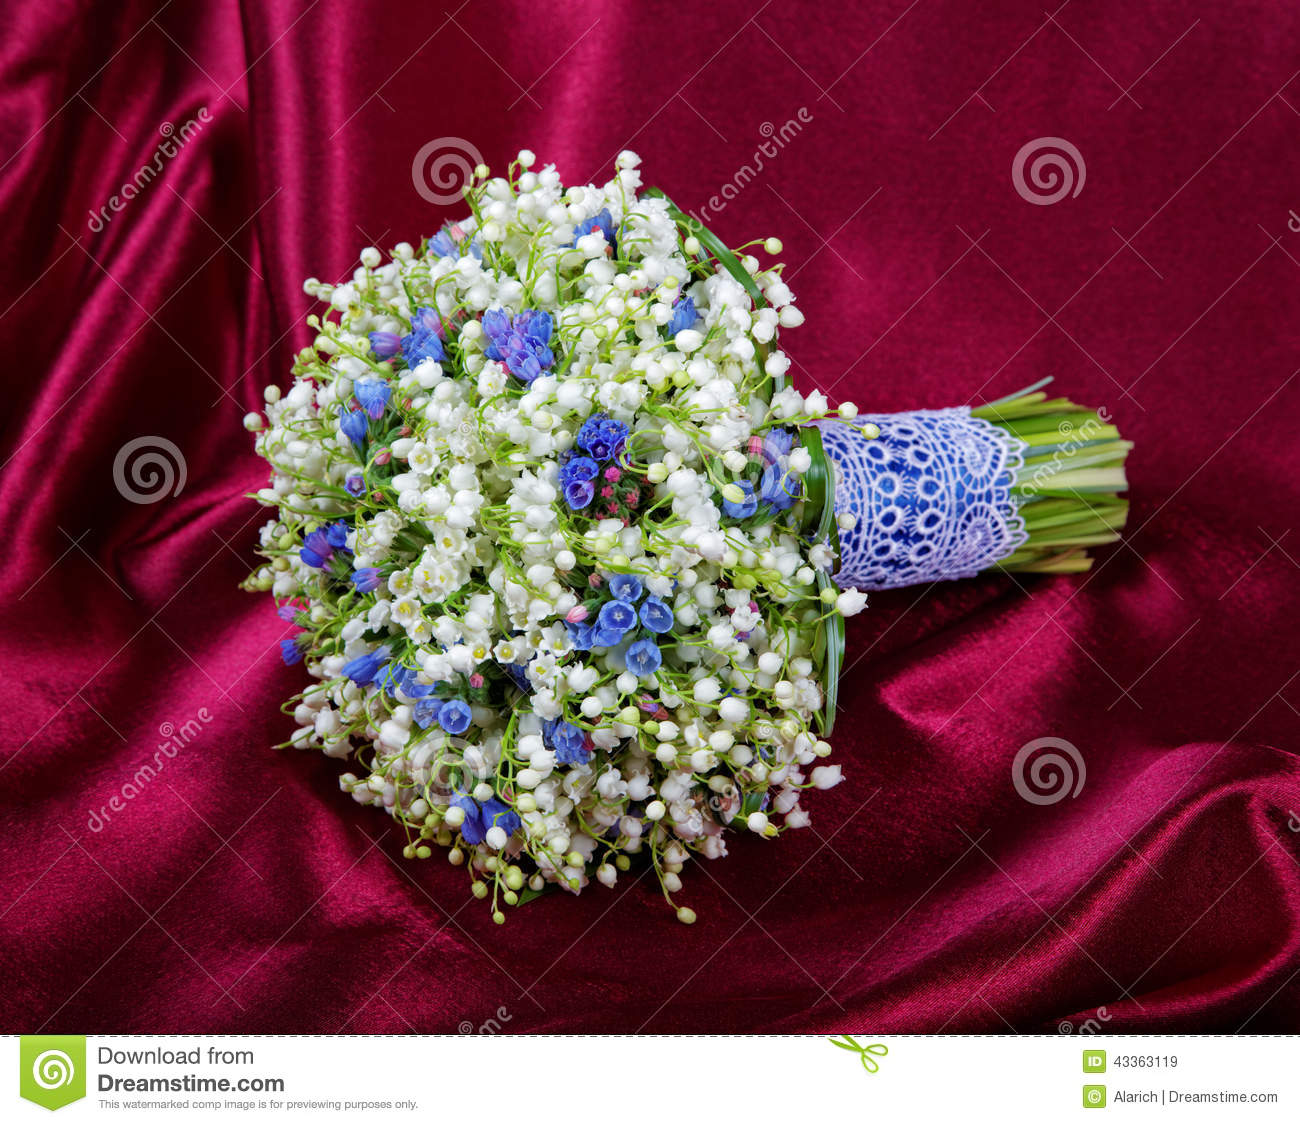 Lily Of The Valley Wedding Flowers: Wedding Bouquet From Lilies Of The Valley Stock Image